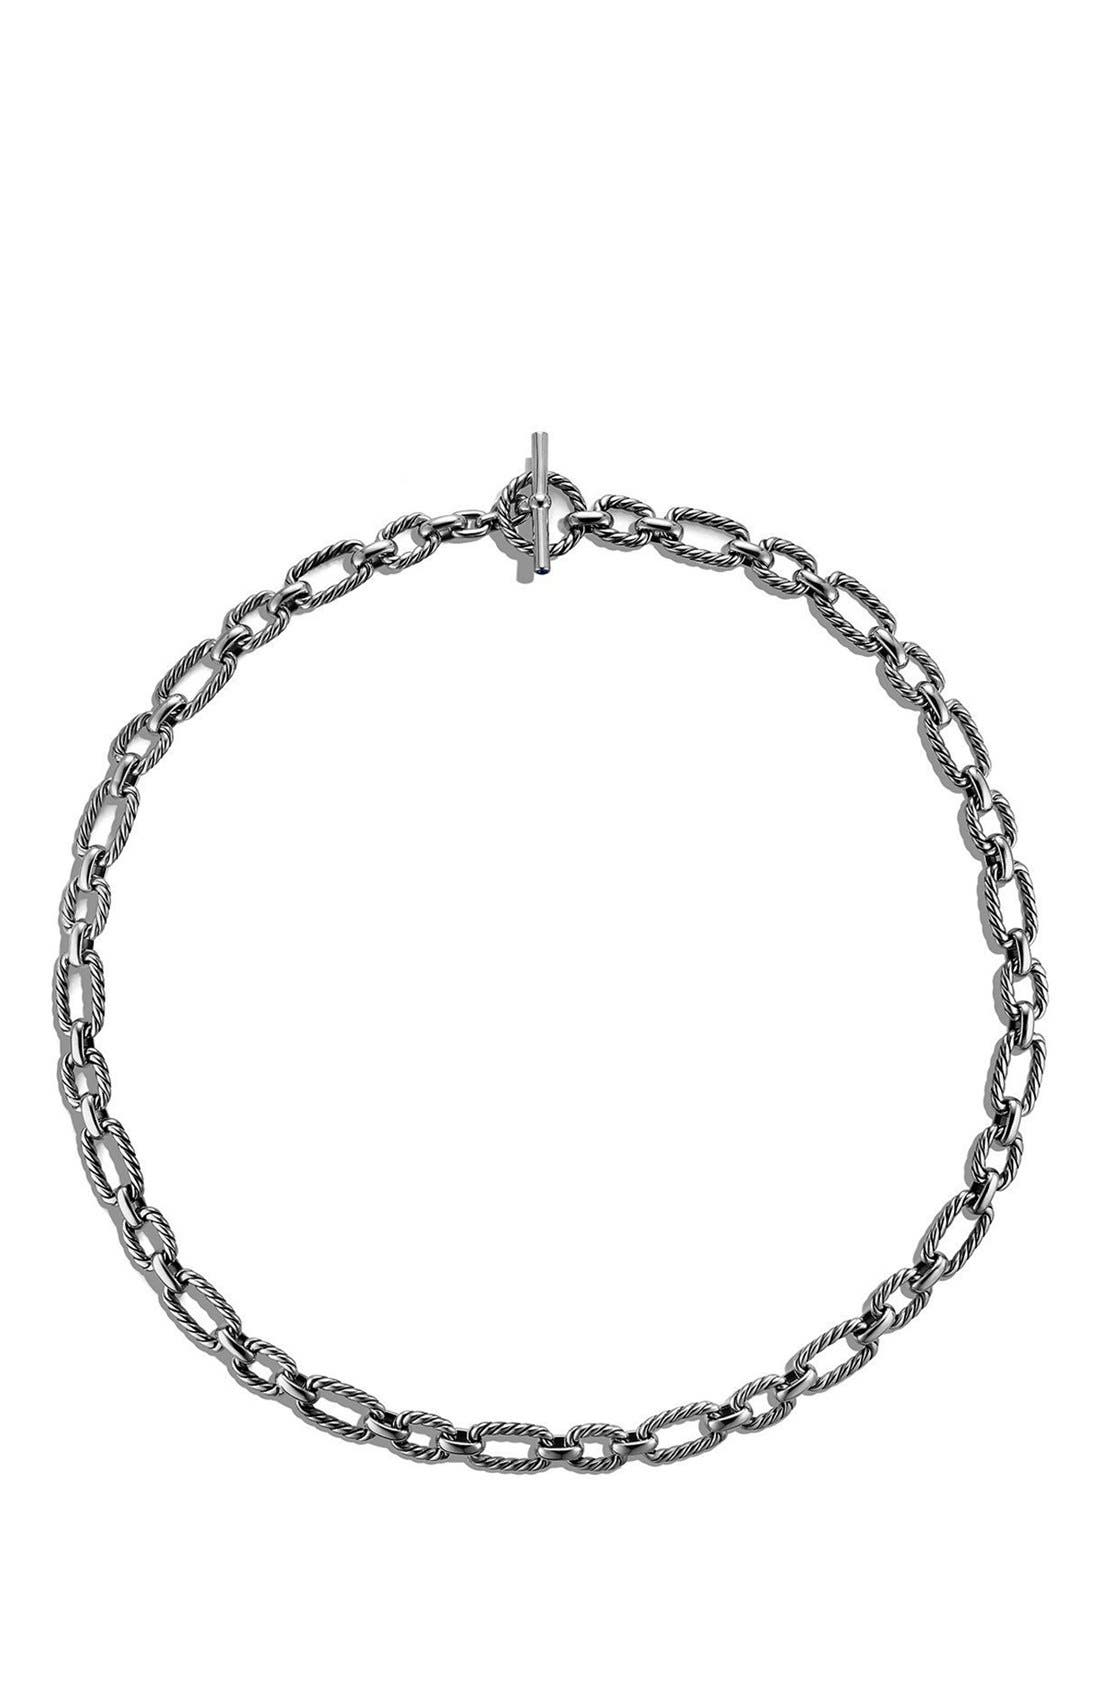 David Yurman 'Chain' Cushion Link Necklace with Blue Sapphires